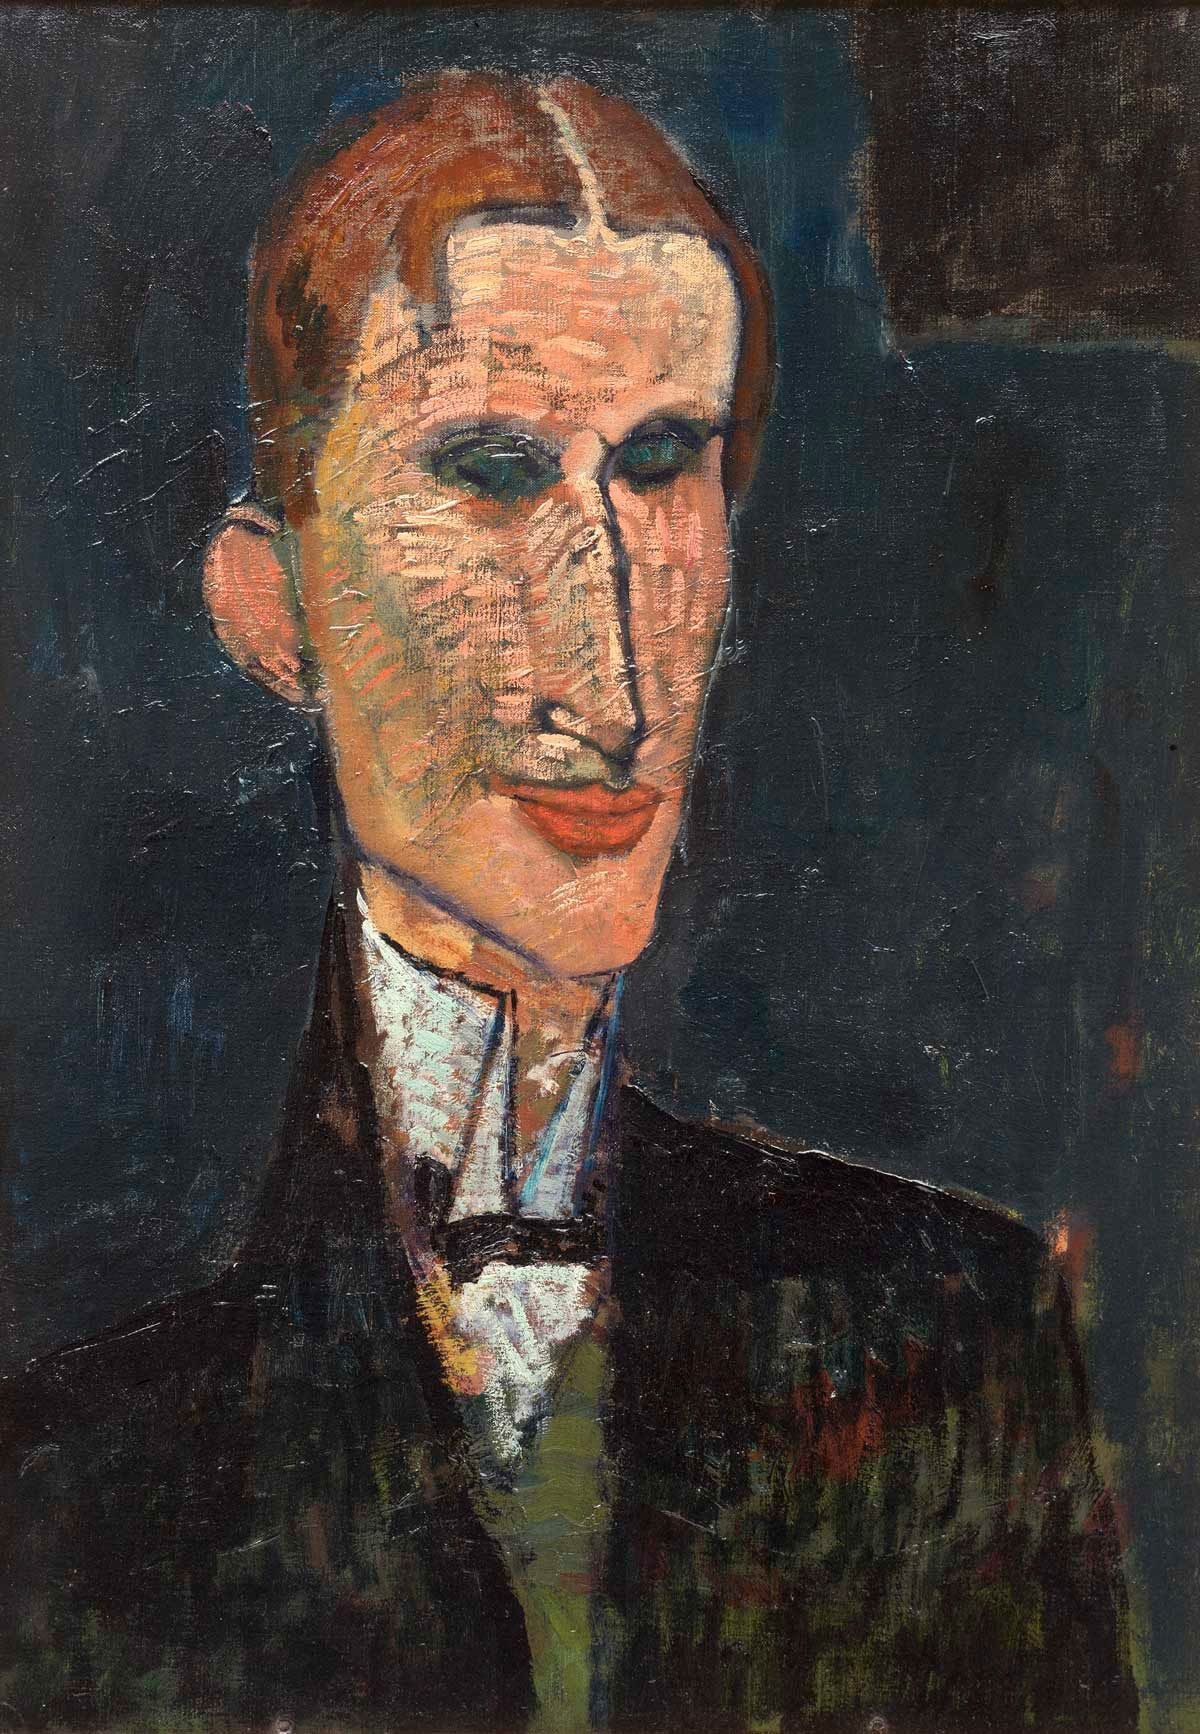 Artwork file SecretModigliani | Amédéo modigliani, Modigliani, Art moderne